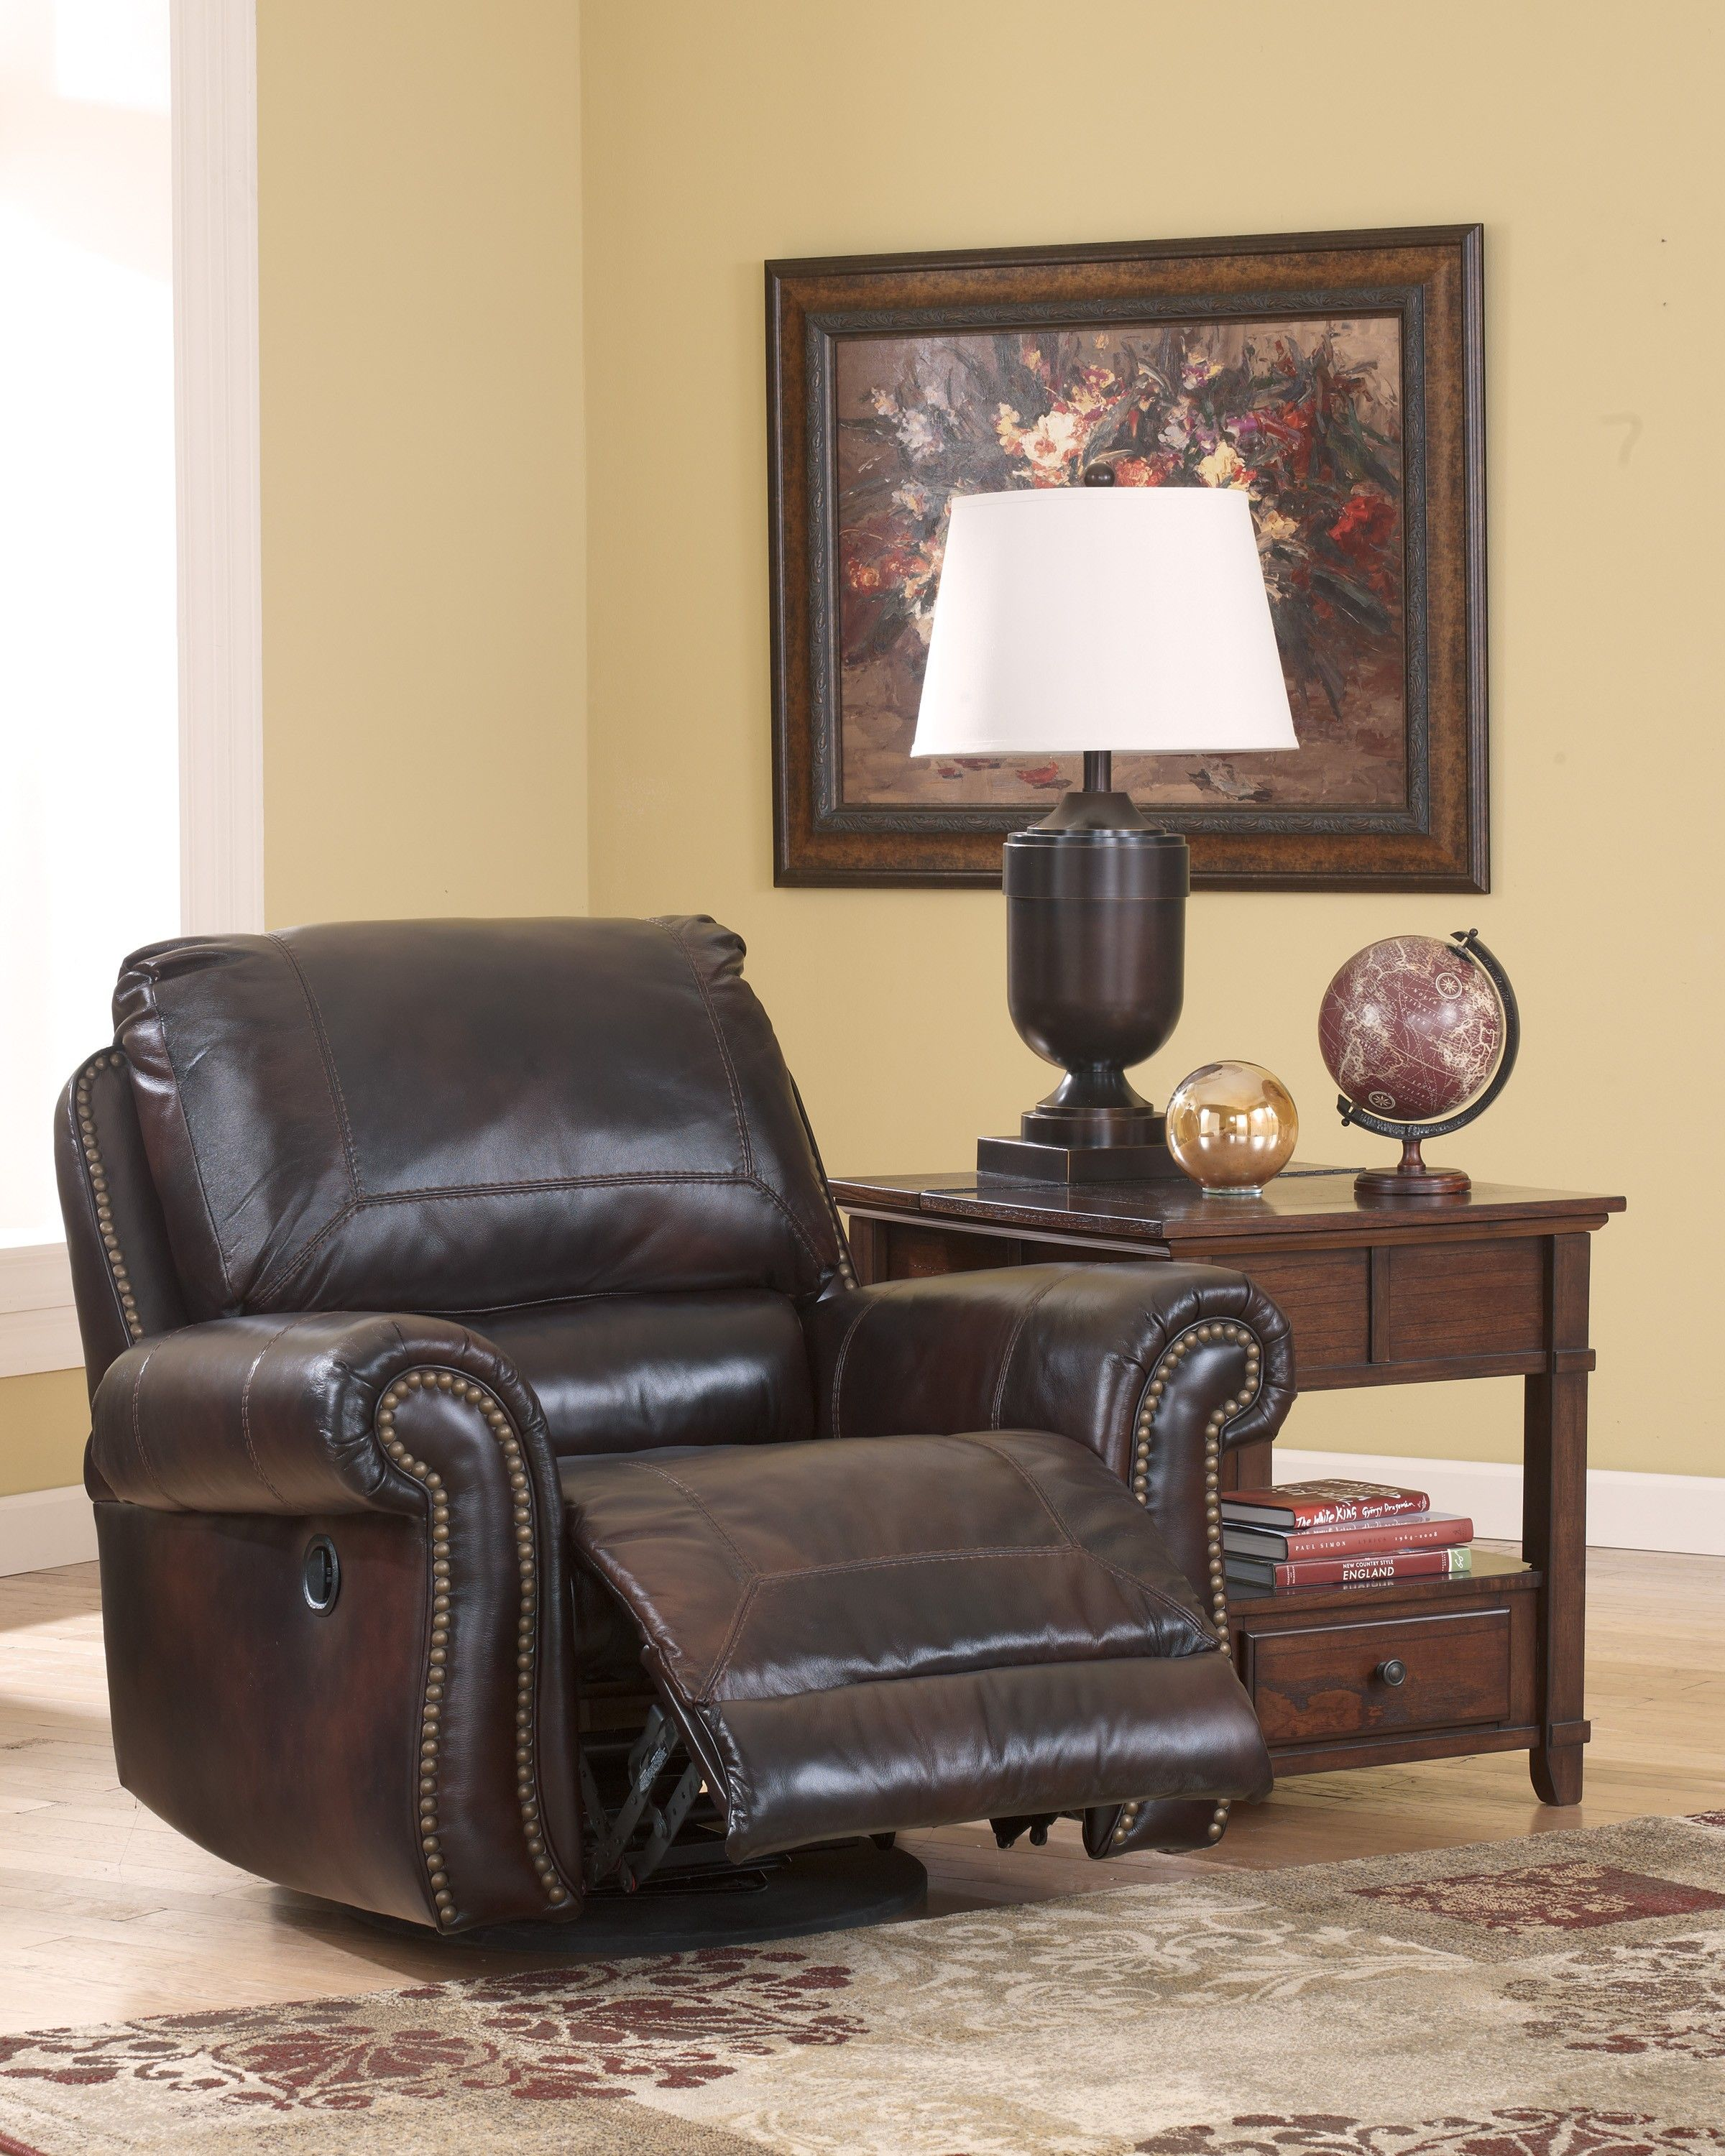 Mm furniture dexpen saddle swivel glider recliner - Swivel chair living room furniture ...